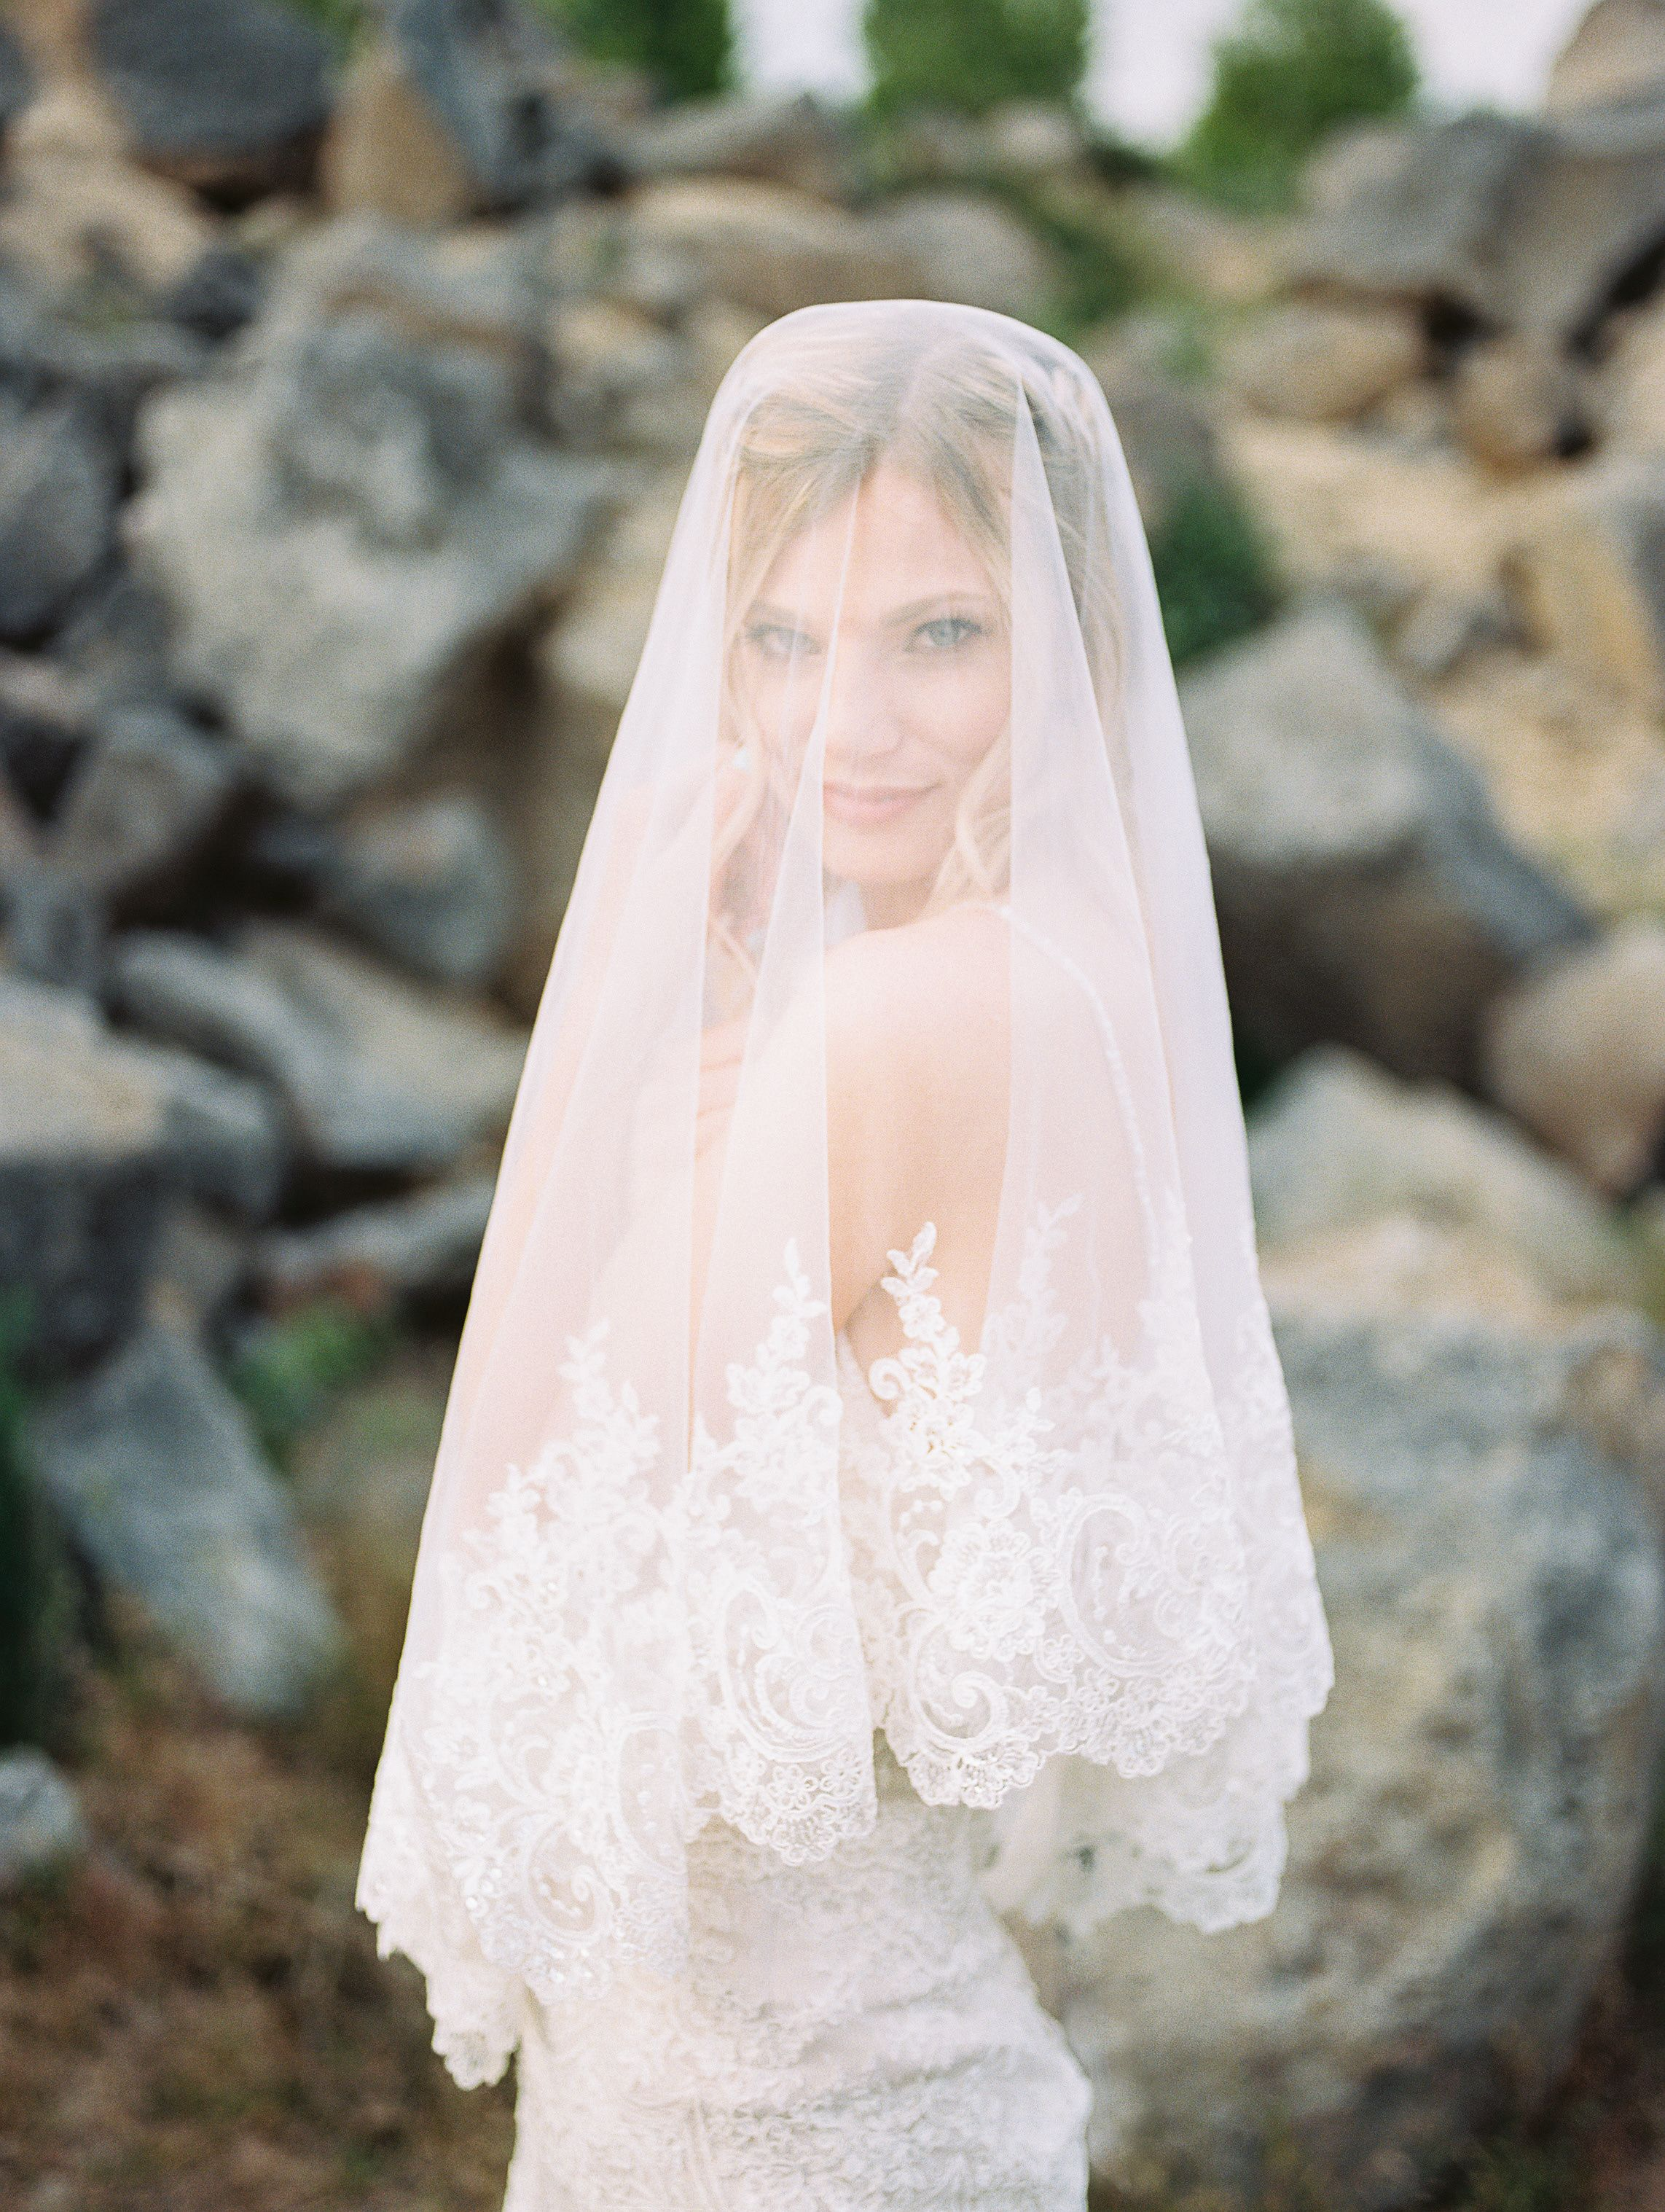 Poppy Bouquet Weddings Gowns And Veils Pinterest Wedding Gowns